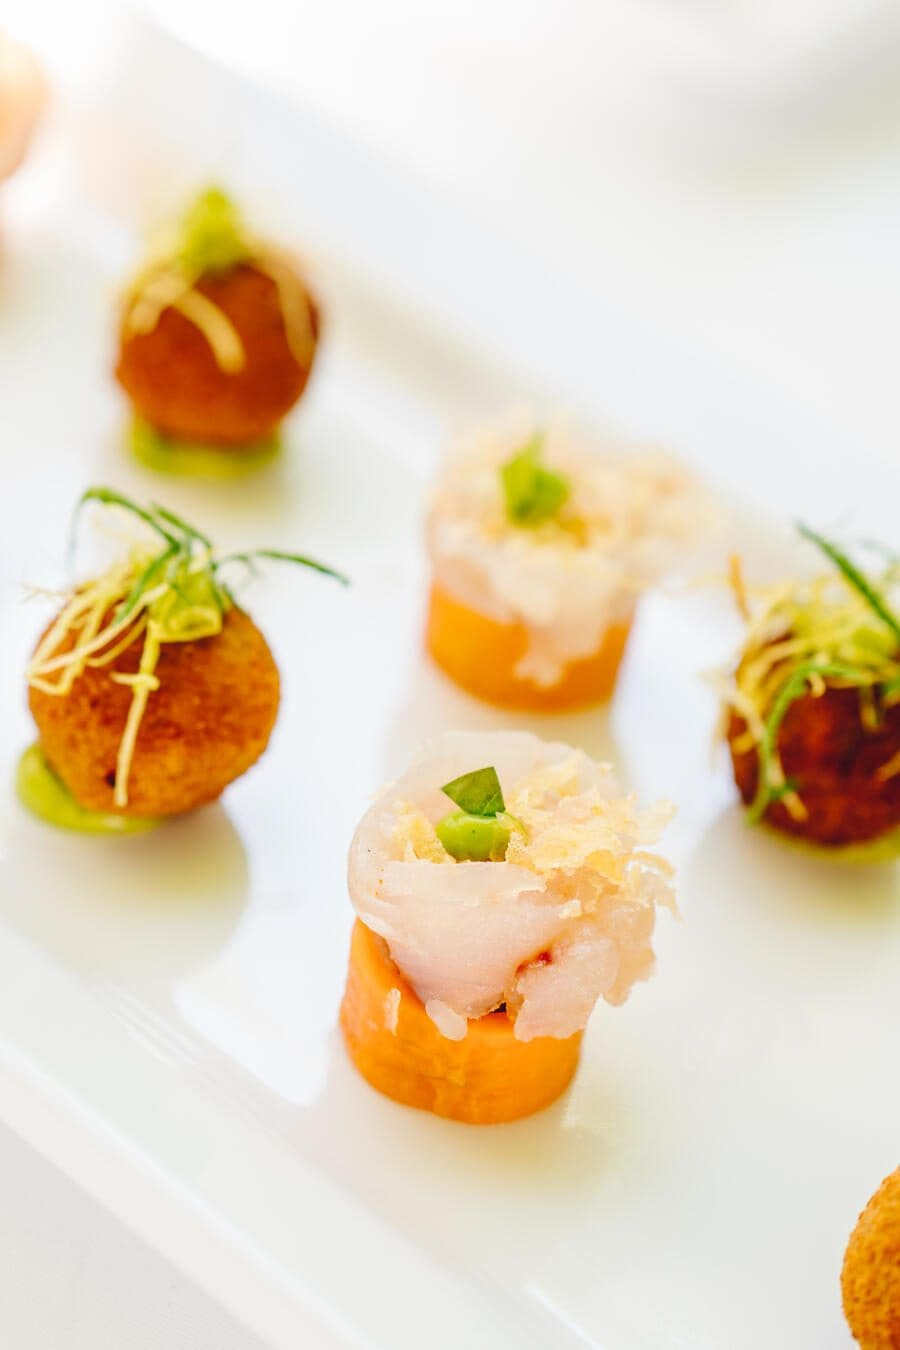 Garden Party Amuse bouches